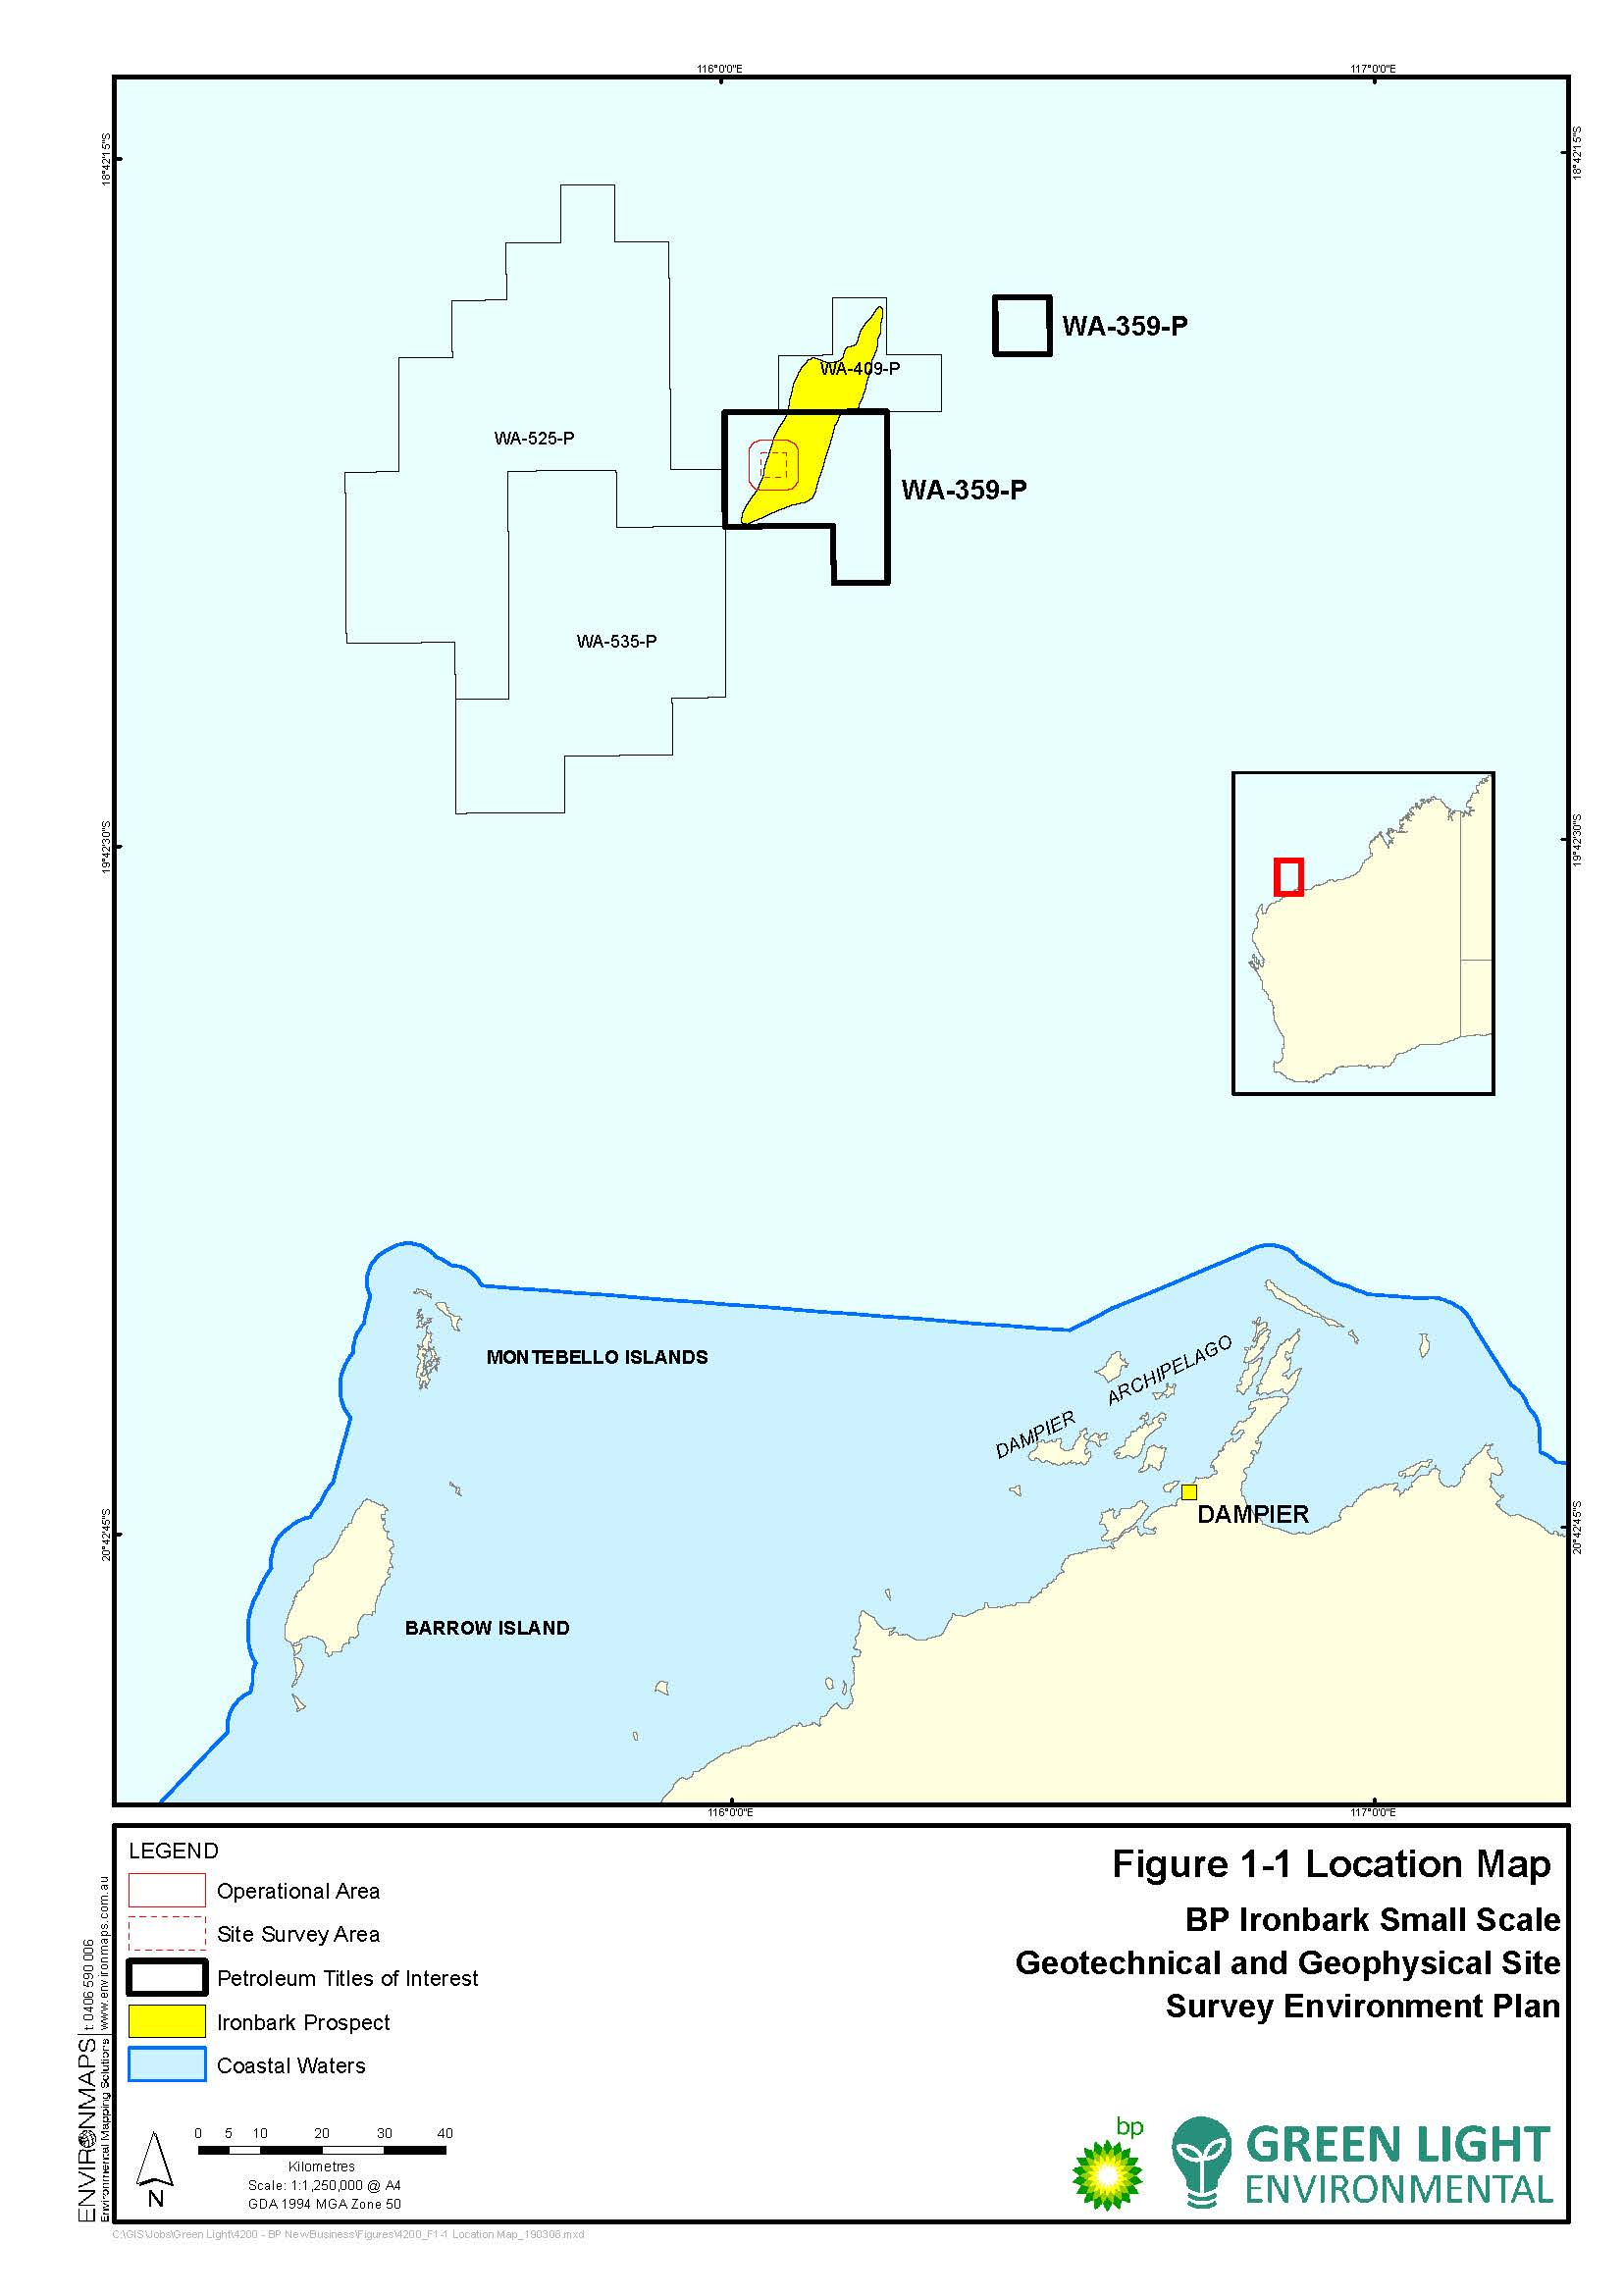 Location map - Activity: BP Ironbark Small Scale Geotechnical and Geophysical Site Survey (refer to description)